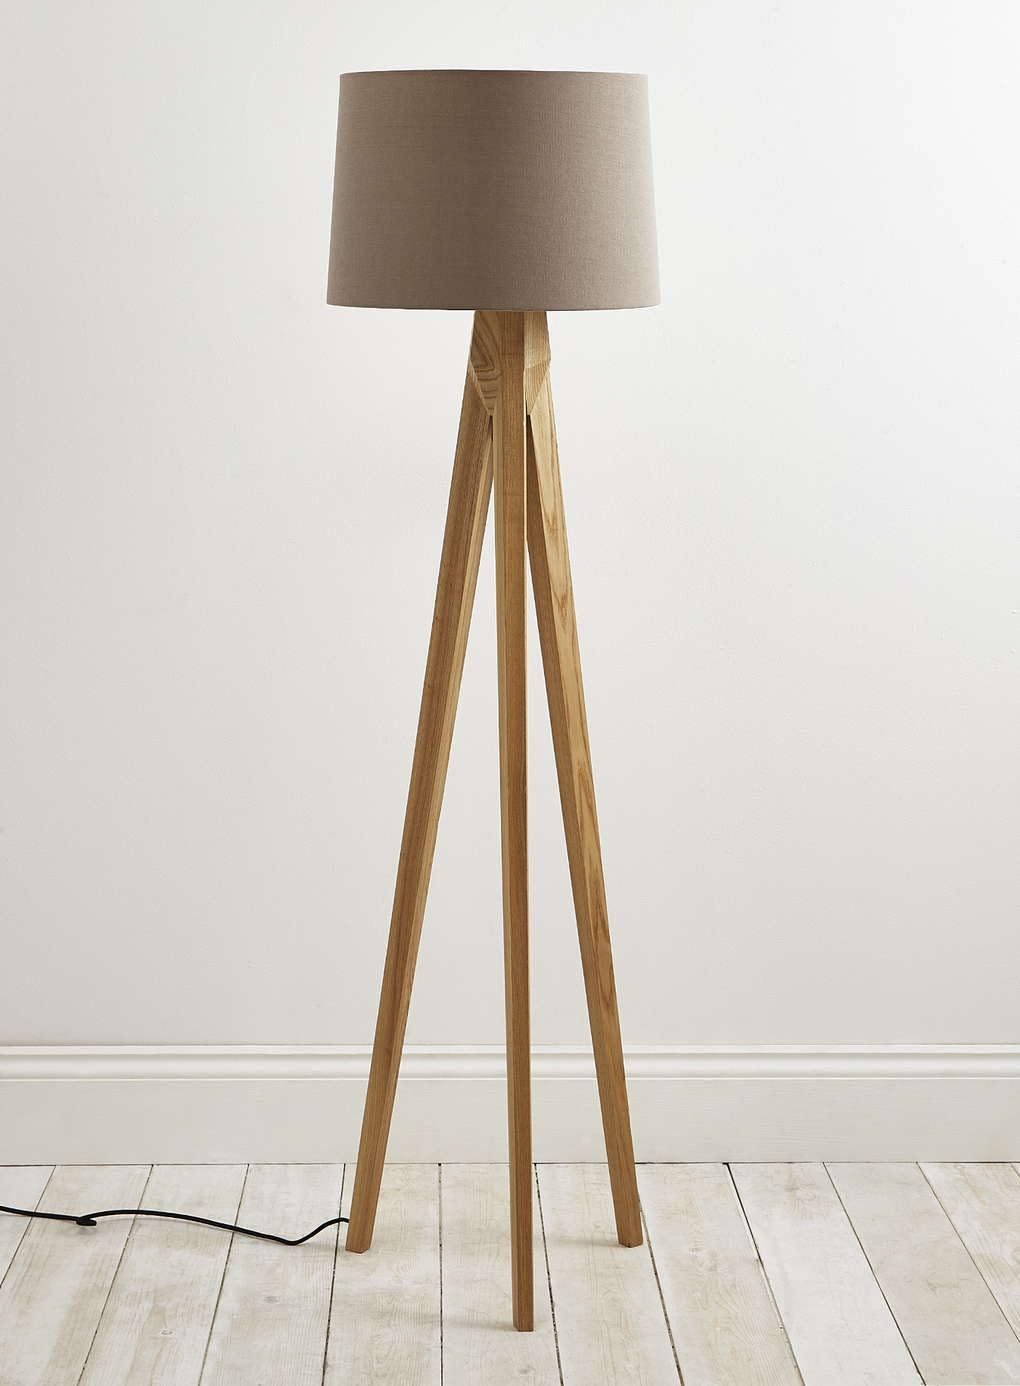 tripod floor lamp wooden legs  floor lamps  pinterest  wooden  - wooden floor lamps even for less money  tripod floor lamp wooden legs